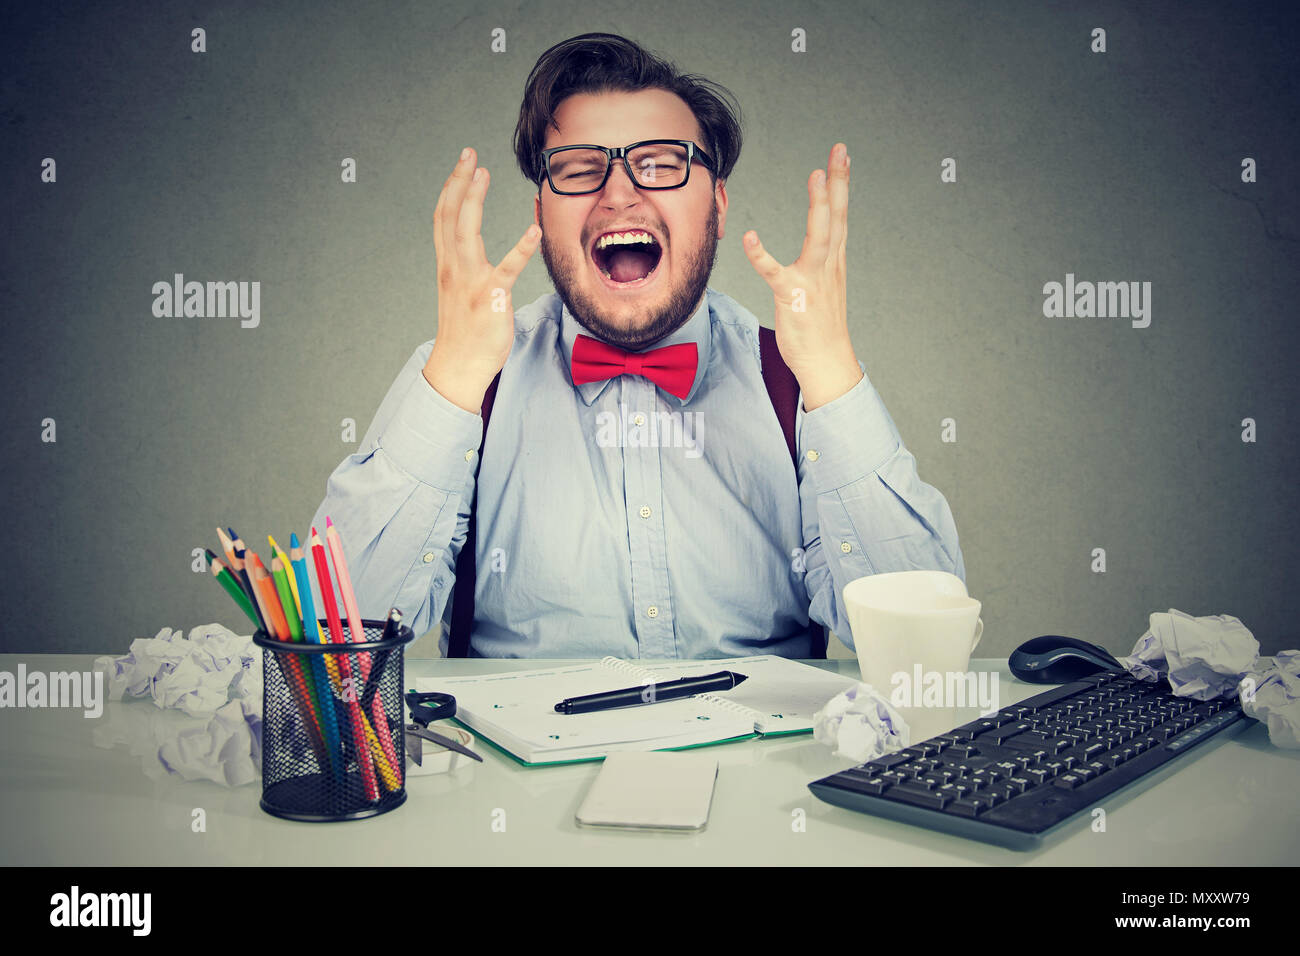 Stressed business man sitting at working place in chaos and yelling in frustration under pressure of time and workload - Stock Image